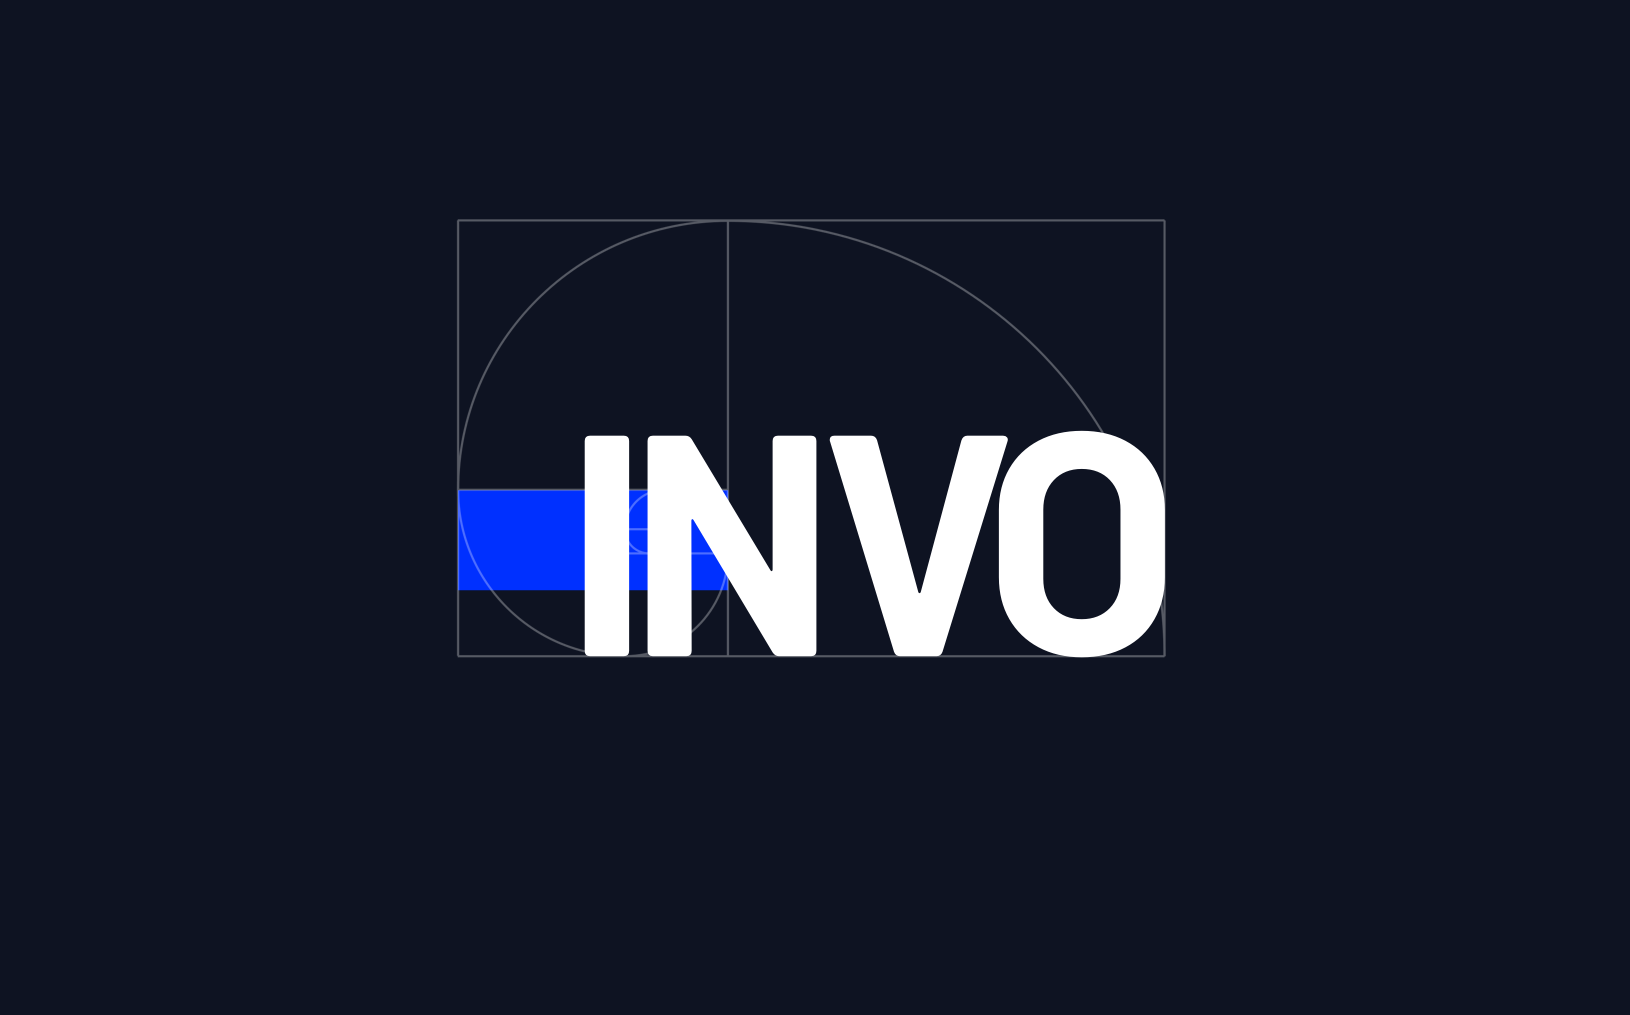 The INVO Technologies logo with a golden spiral placed onto it, to show an example of how to use the golden ratio in web design.